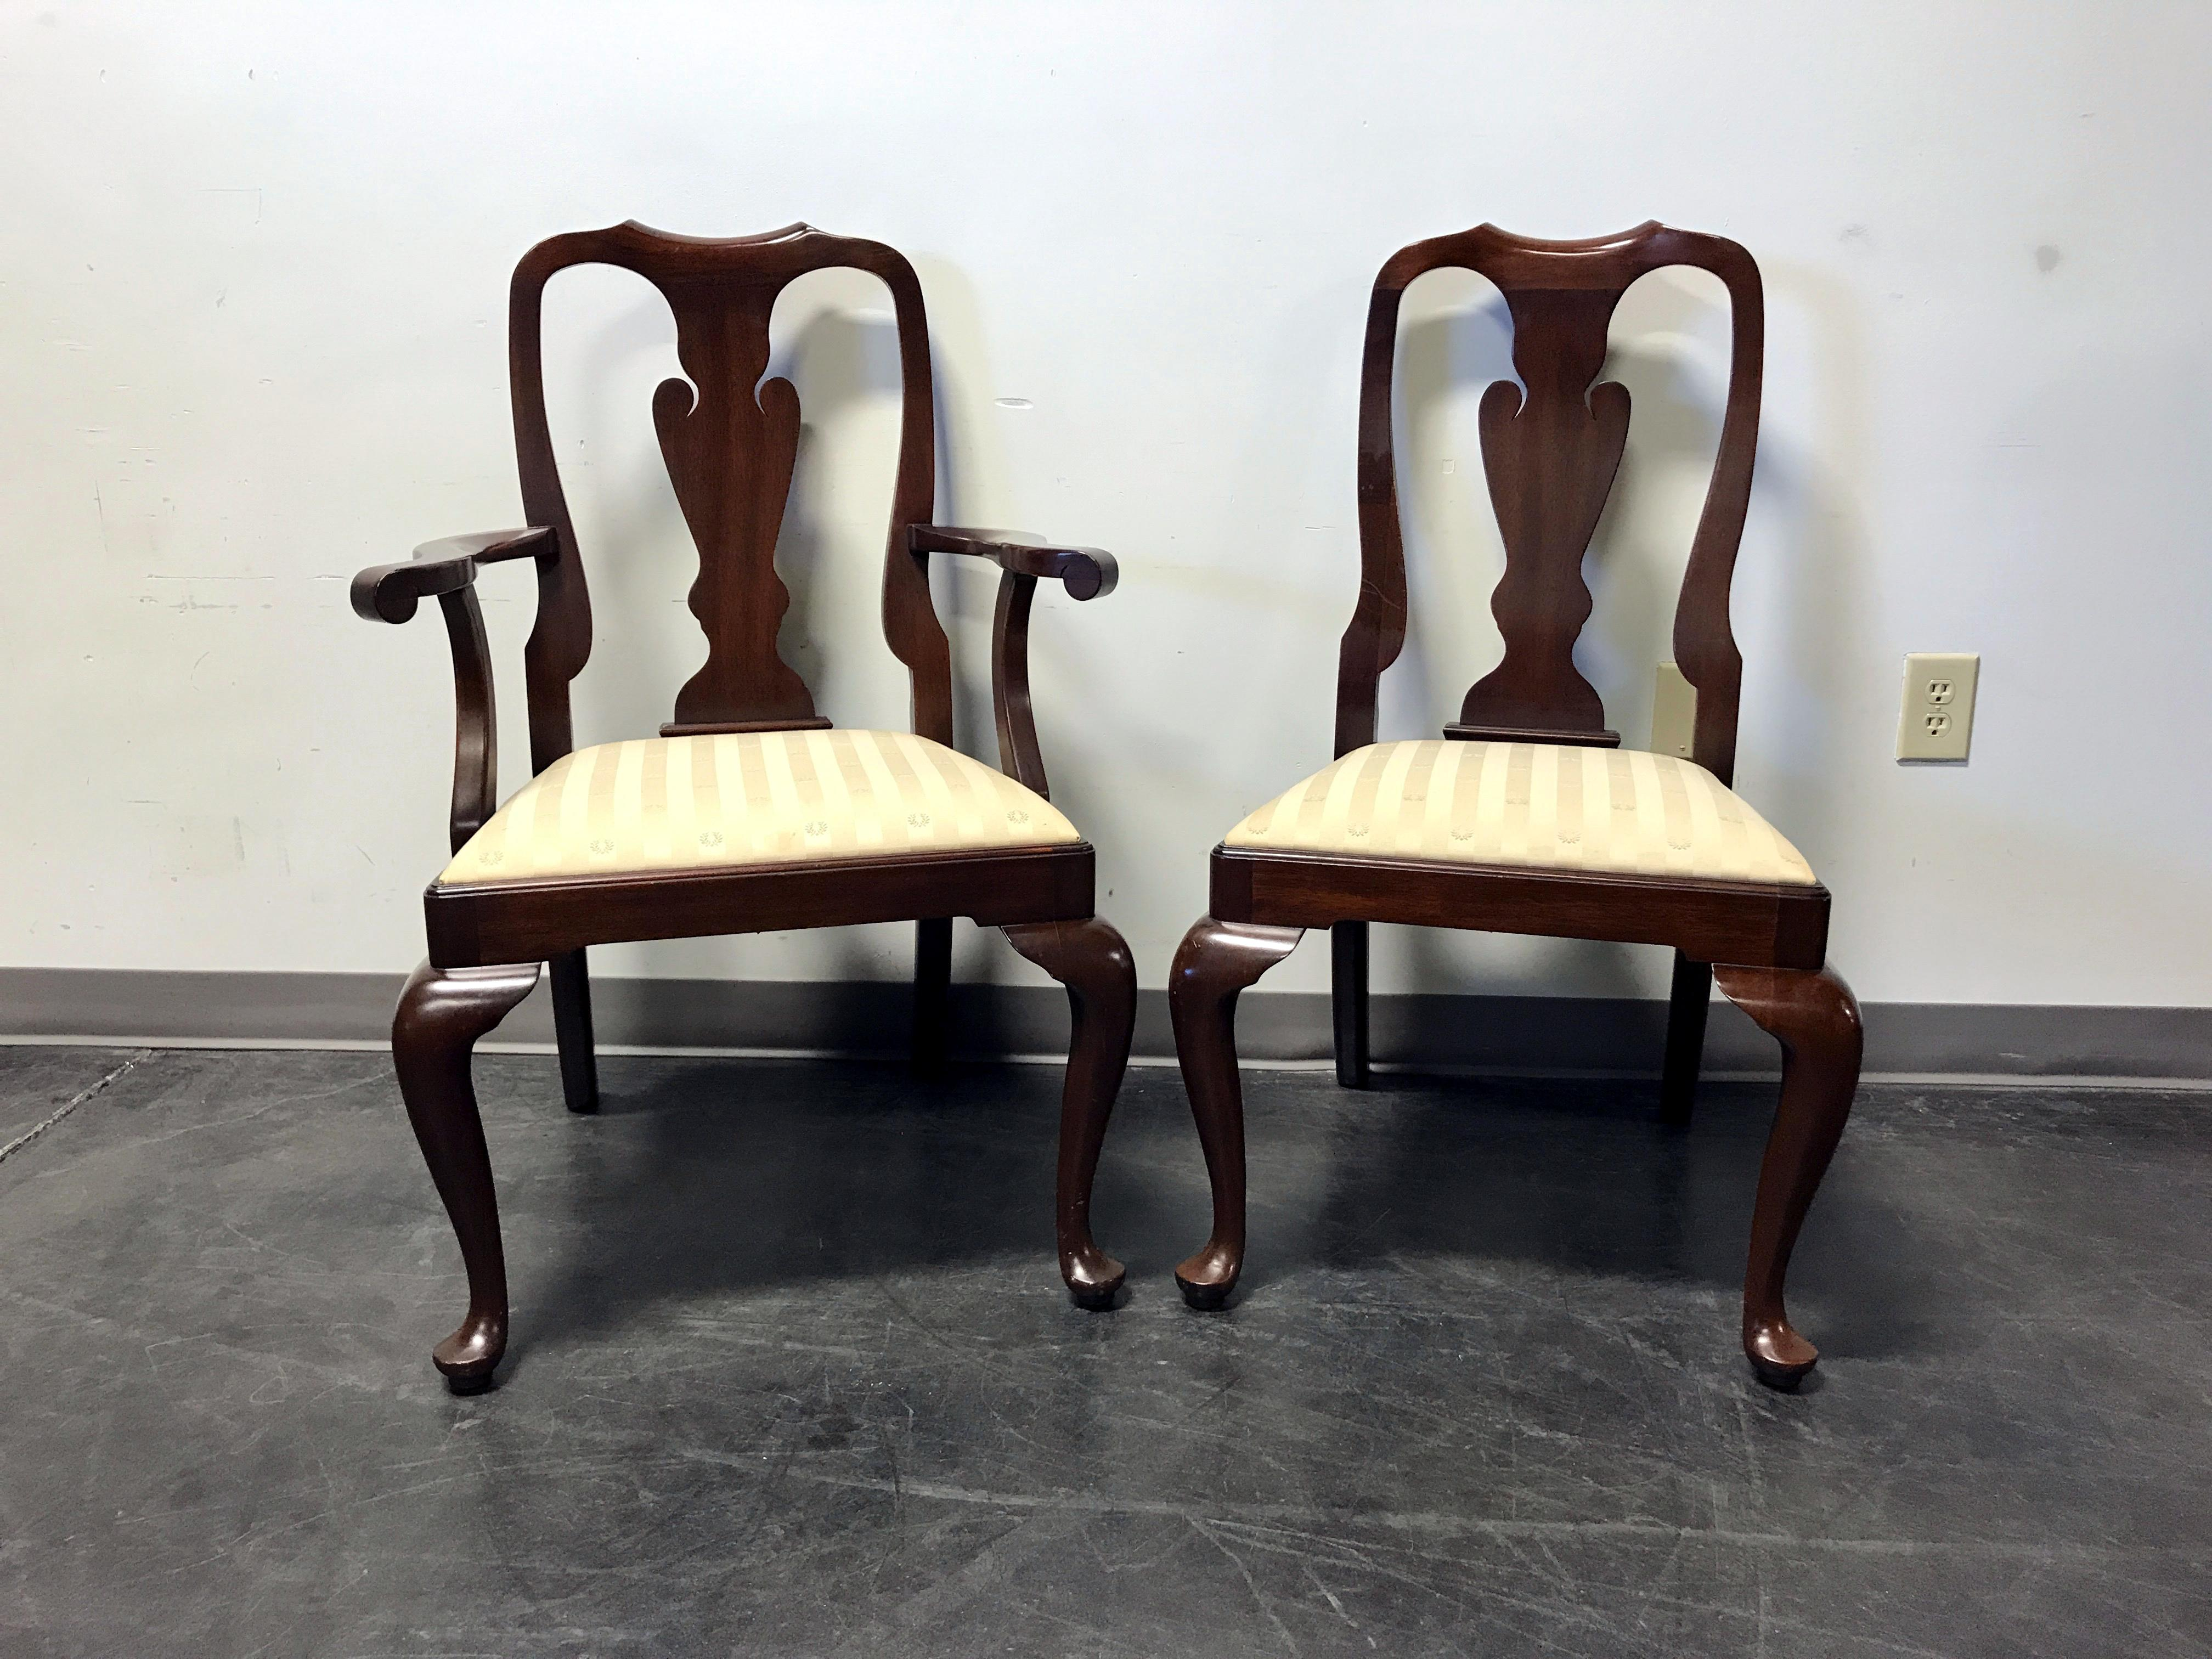 Superb Henkel Harris Mahogany Queen Anne Dining Chairs   Set Of 6   Image 4 Of 11